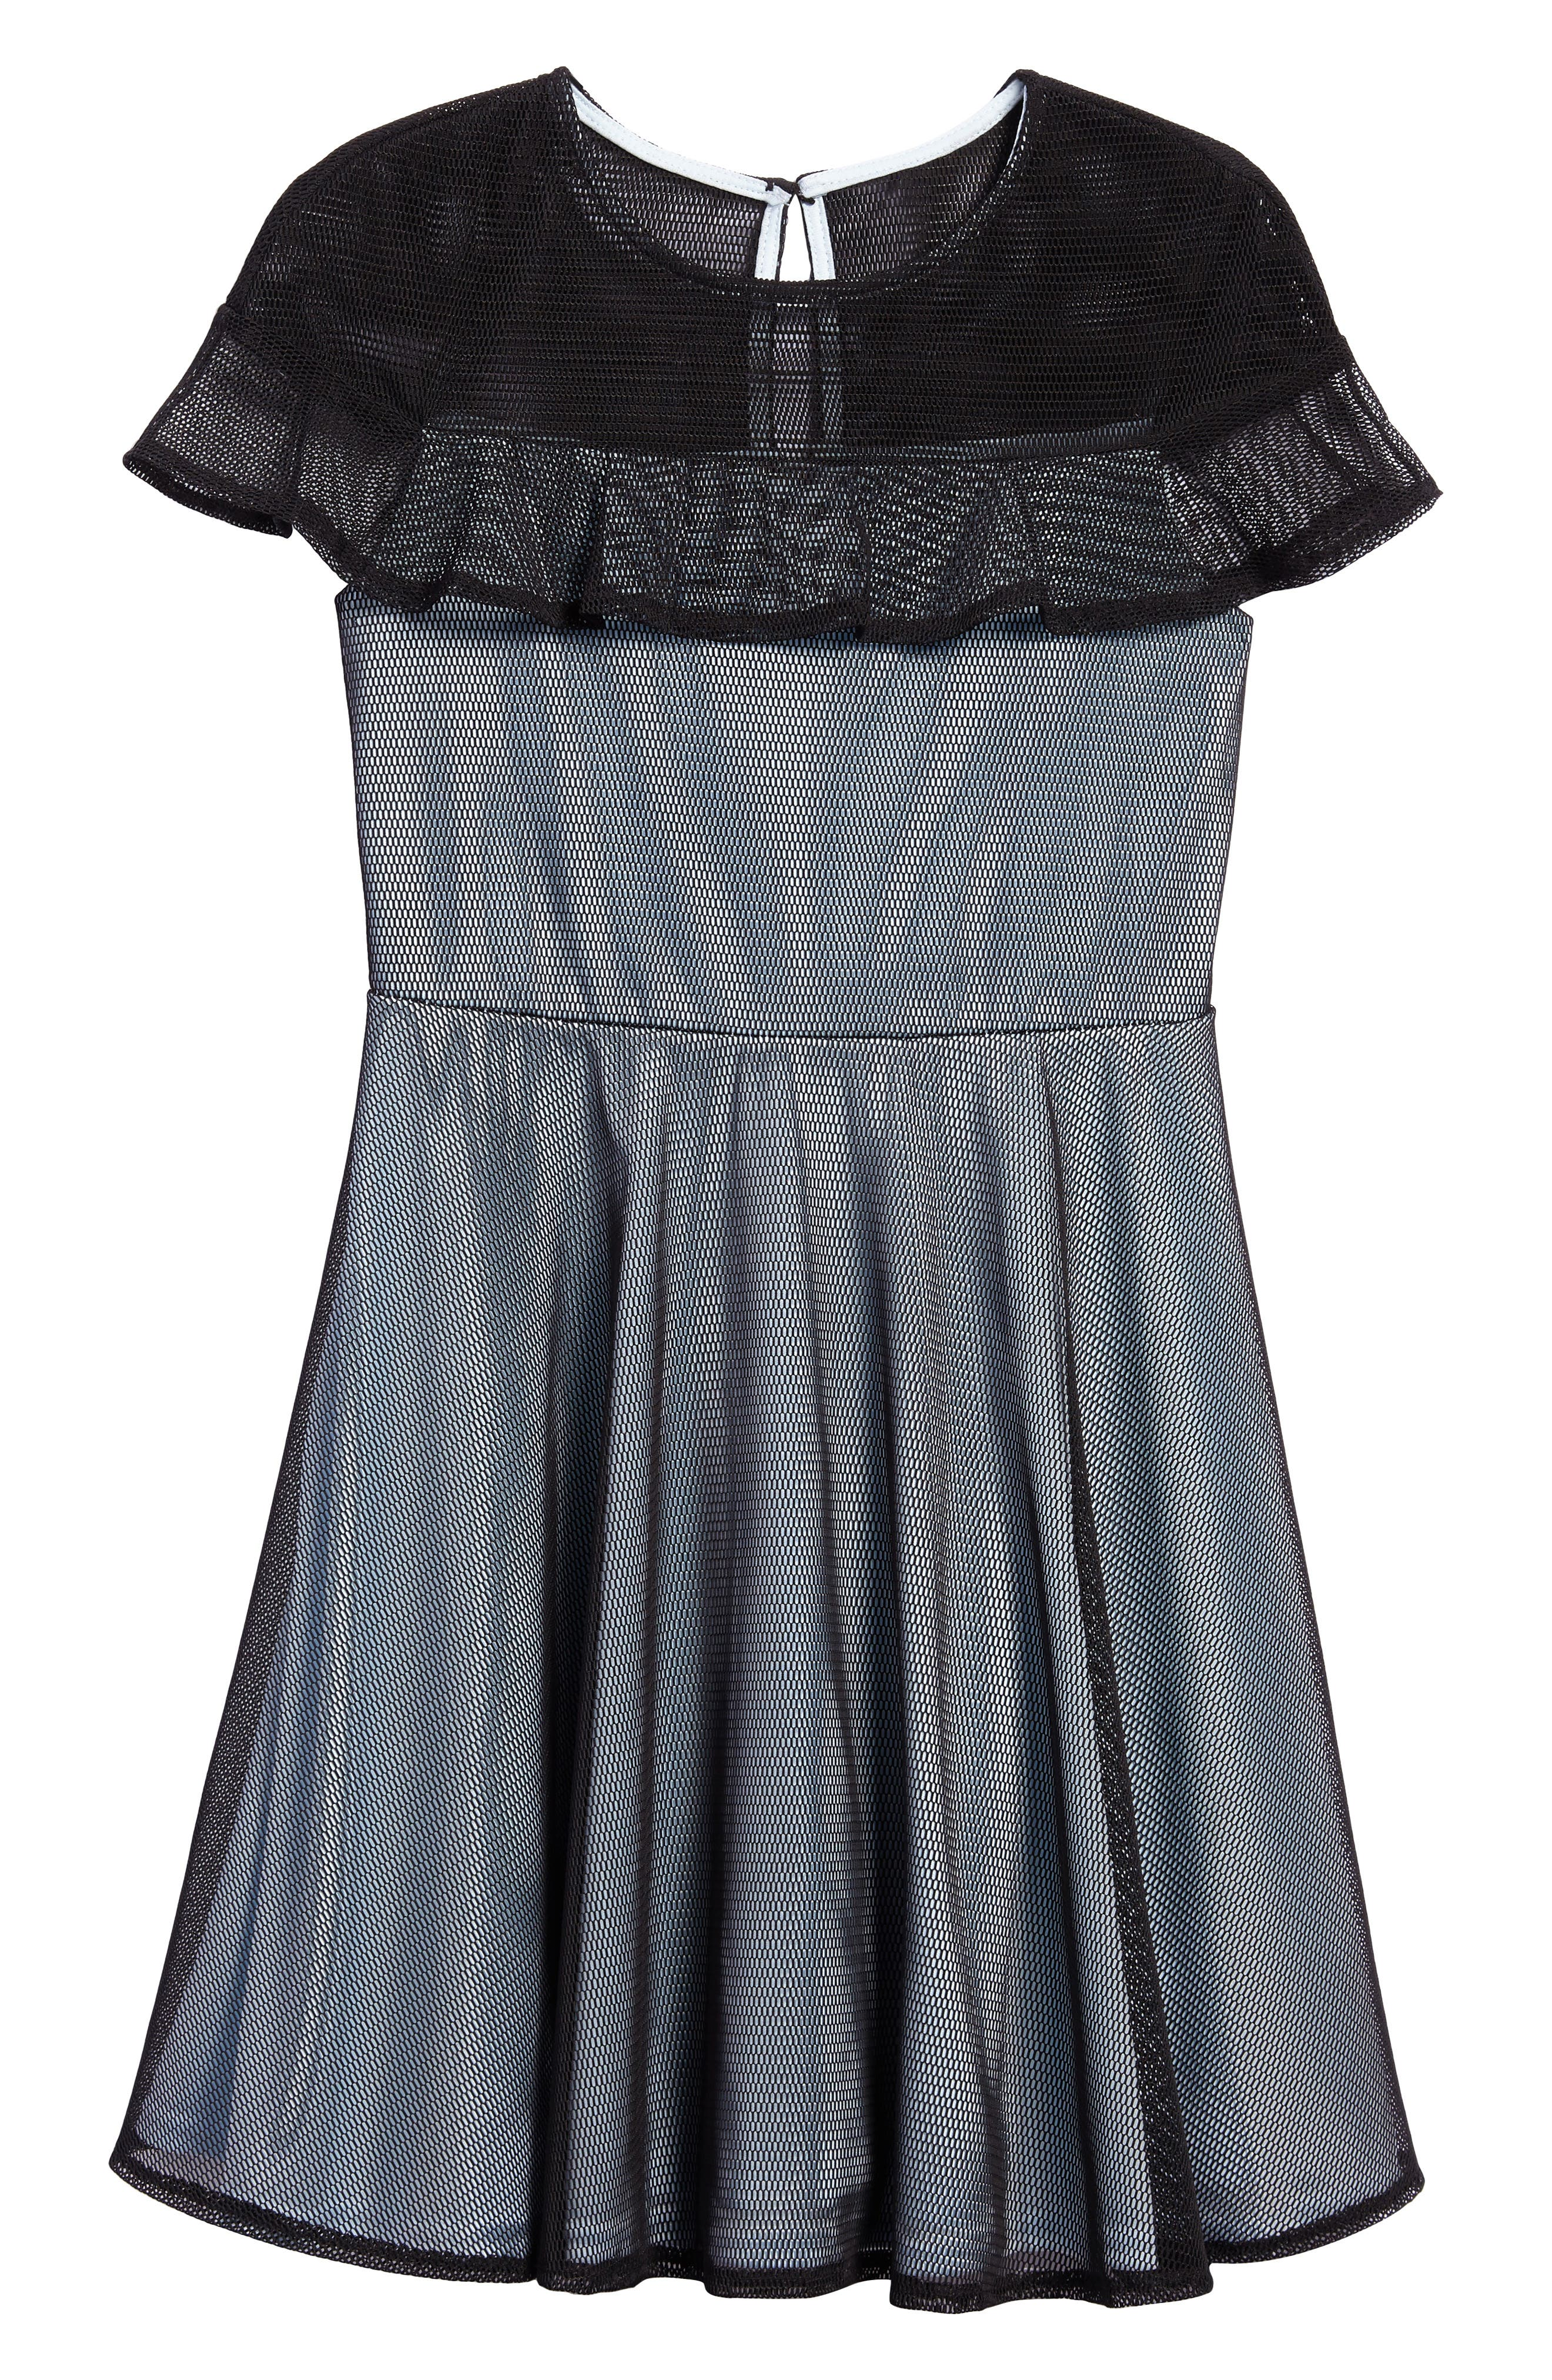 PASTOURELLE BY PIPPA & JULIE,                             Ruffle Mesh Overlay Dress,                             Main thumbnail 1, color,                             001